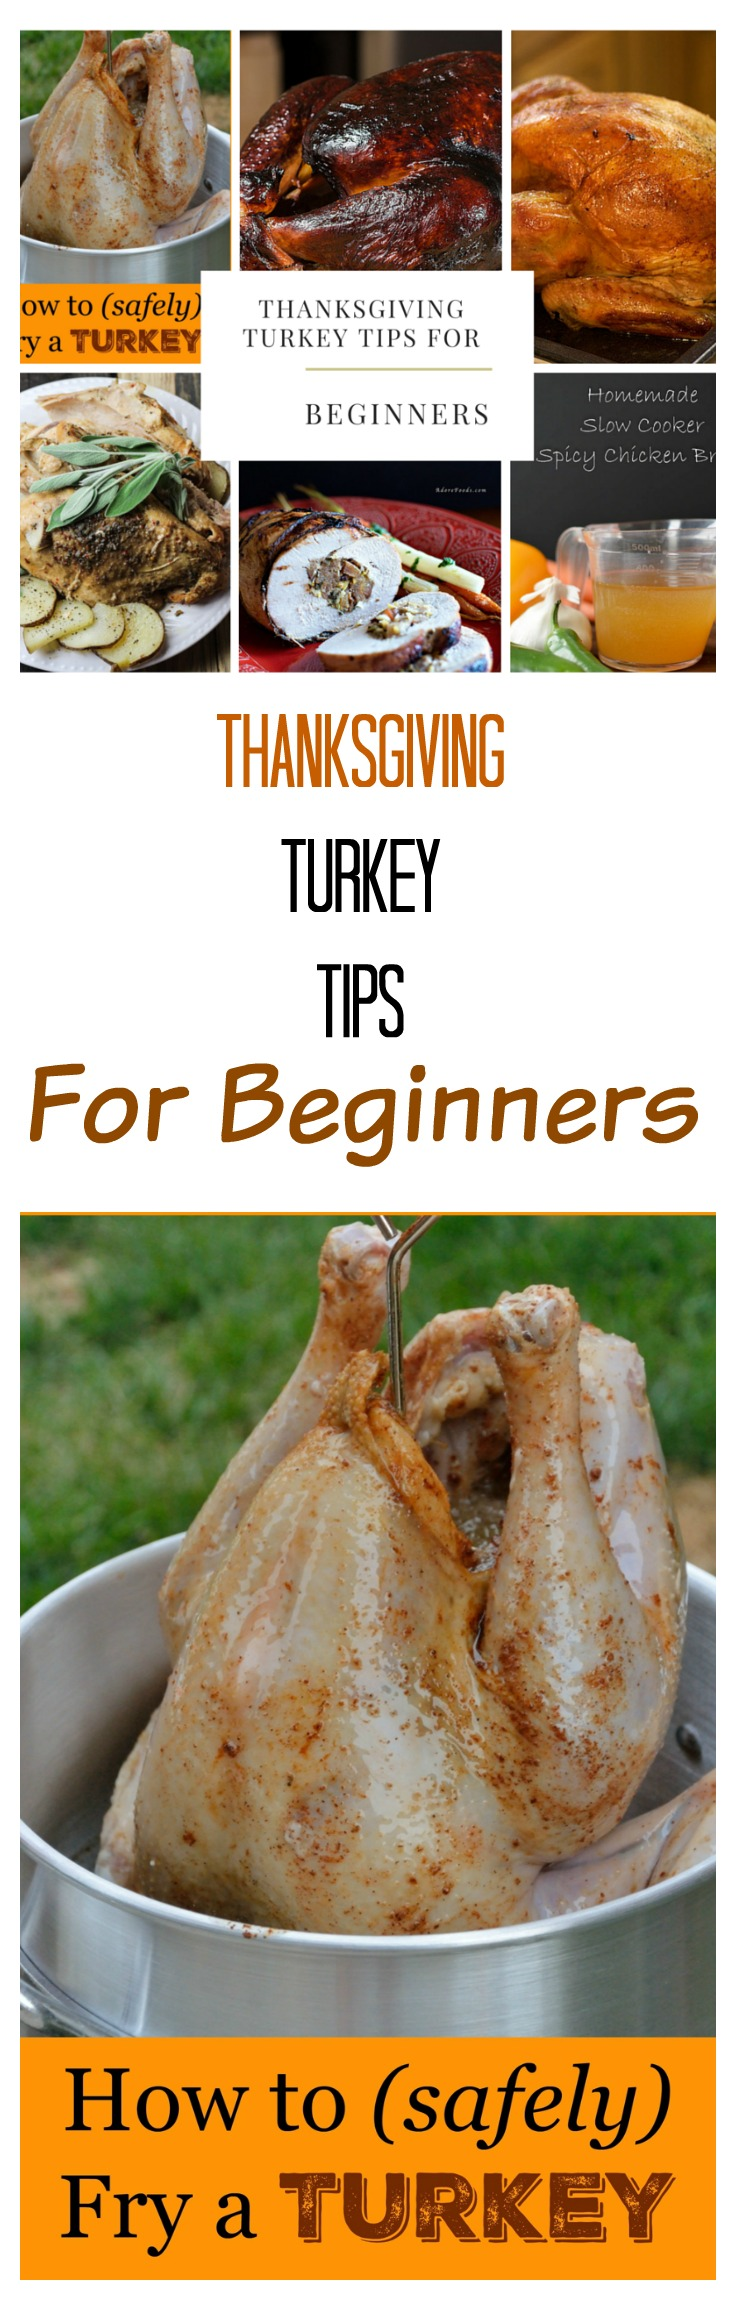 Thanksgiving Turkey Tips for Beginners